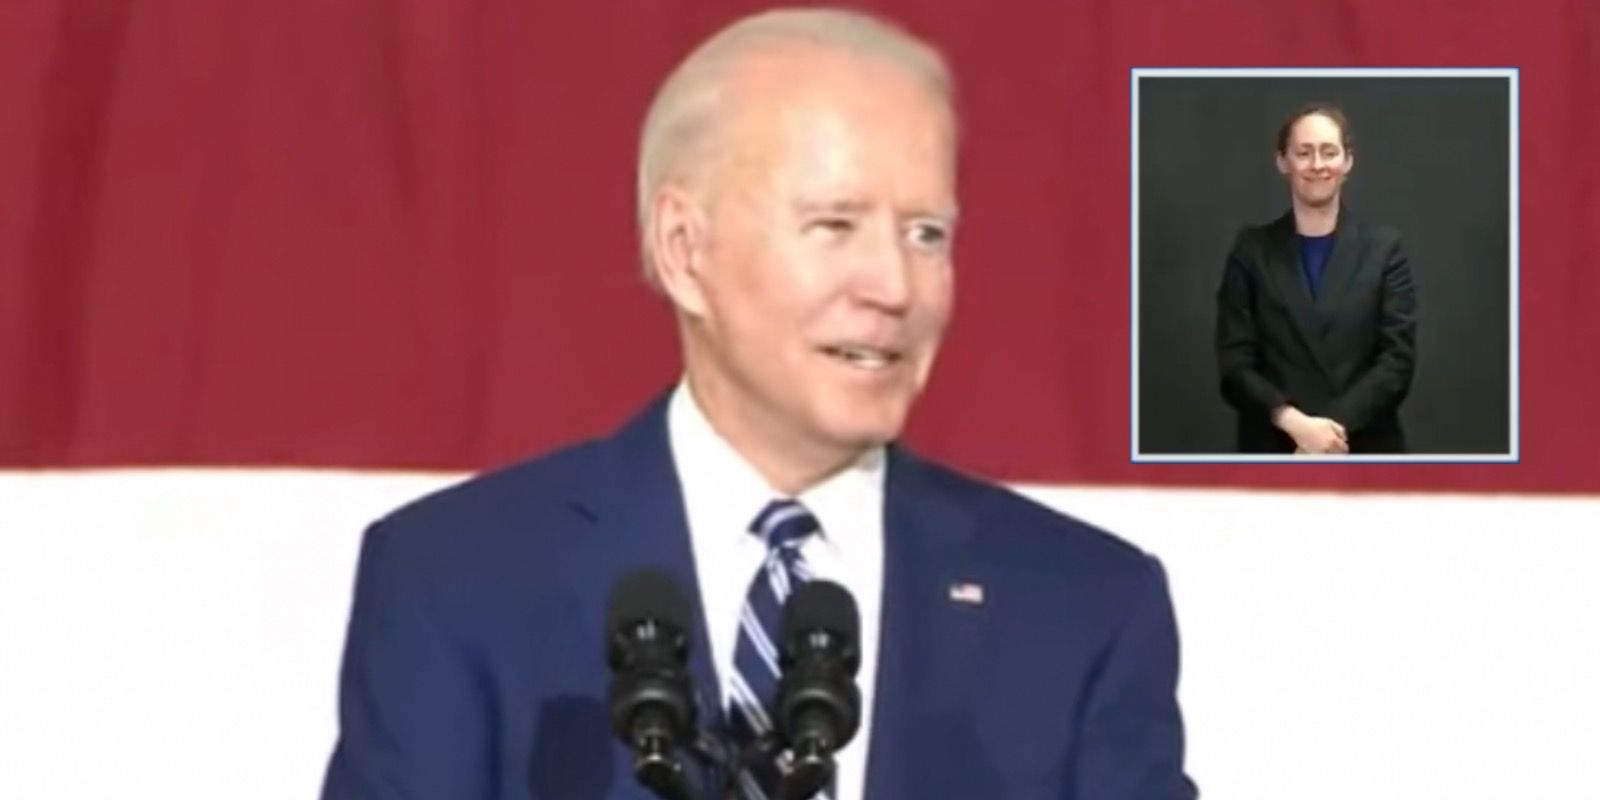 WATCH: Joe Biden spots young girl in audience, creepily says she looks like a 19-year-old